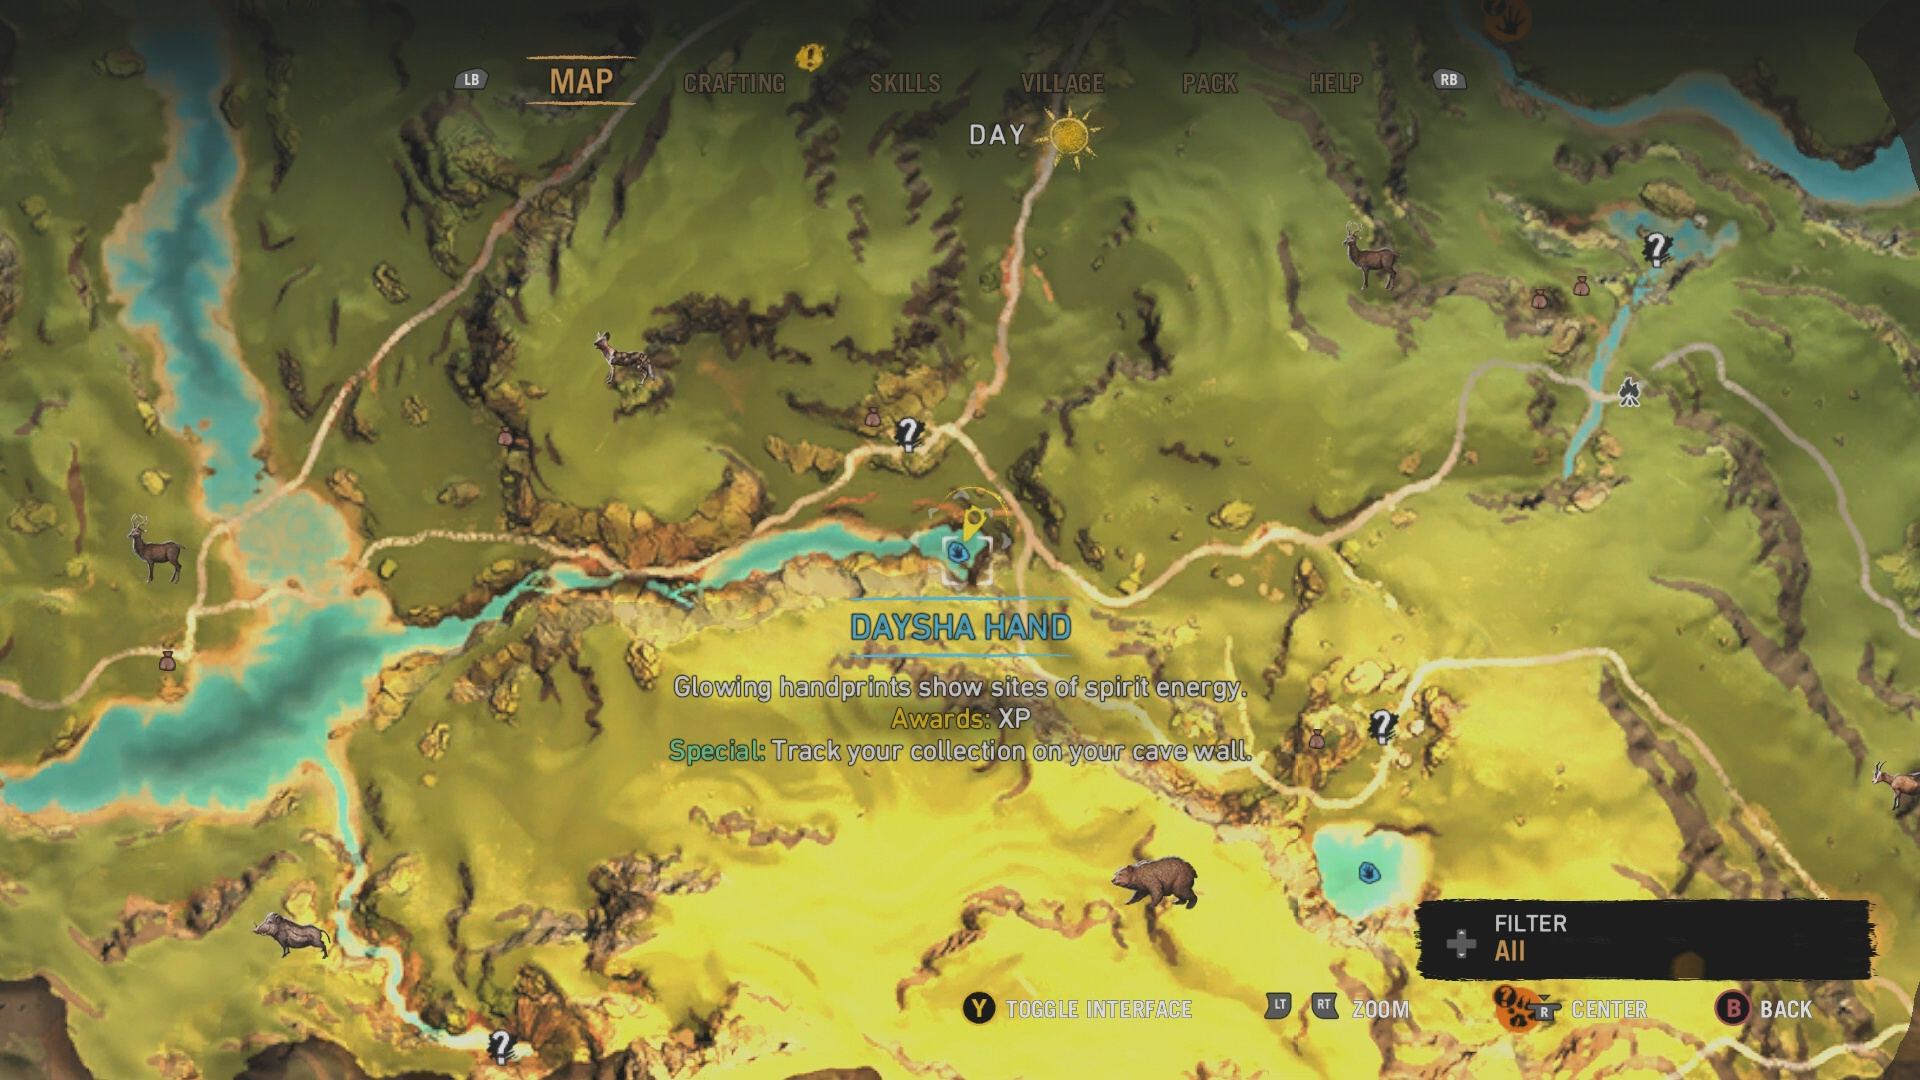 Far cry primal all daysha hand locations usgamer daysha hand 3 this daysha hand is found at the bottom of a pond that contains a crocodile from your village follow the river directly east to a valley gumiabroncs Choice Image